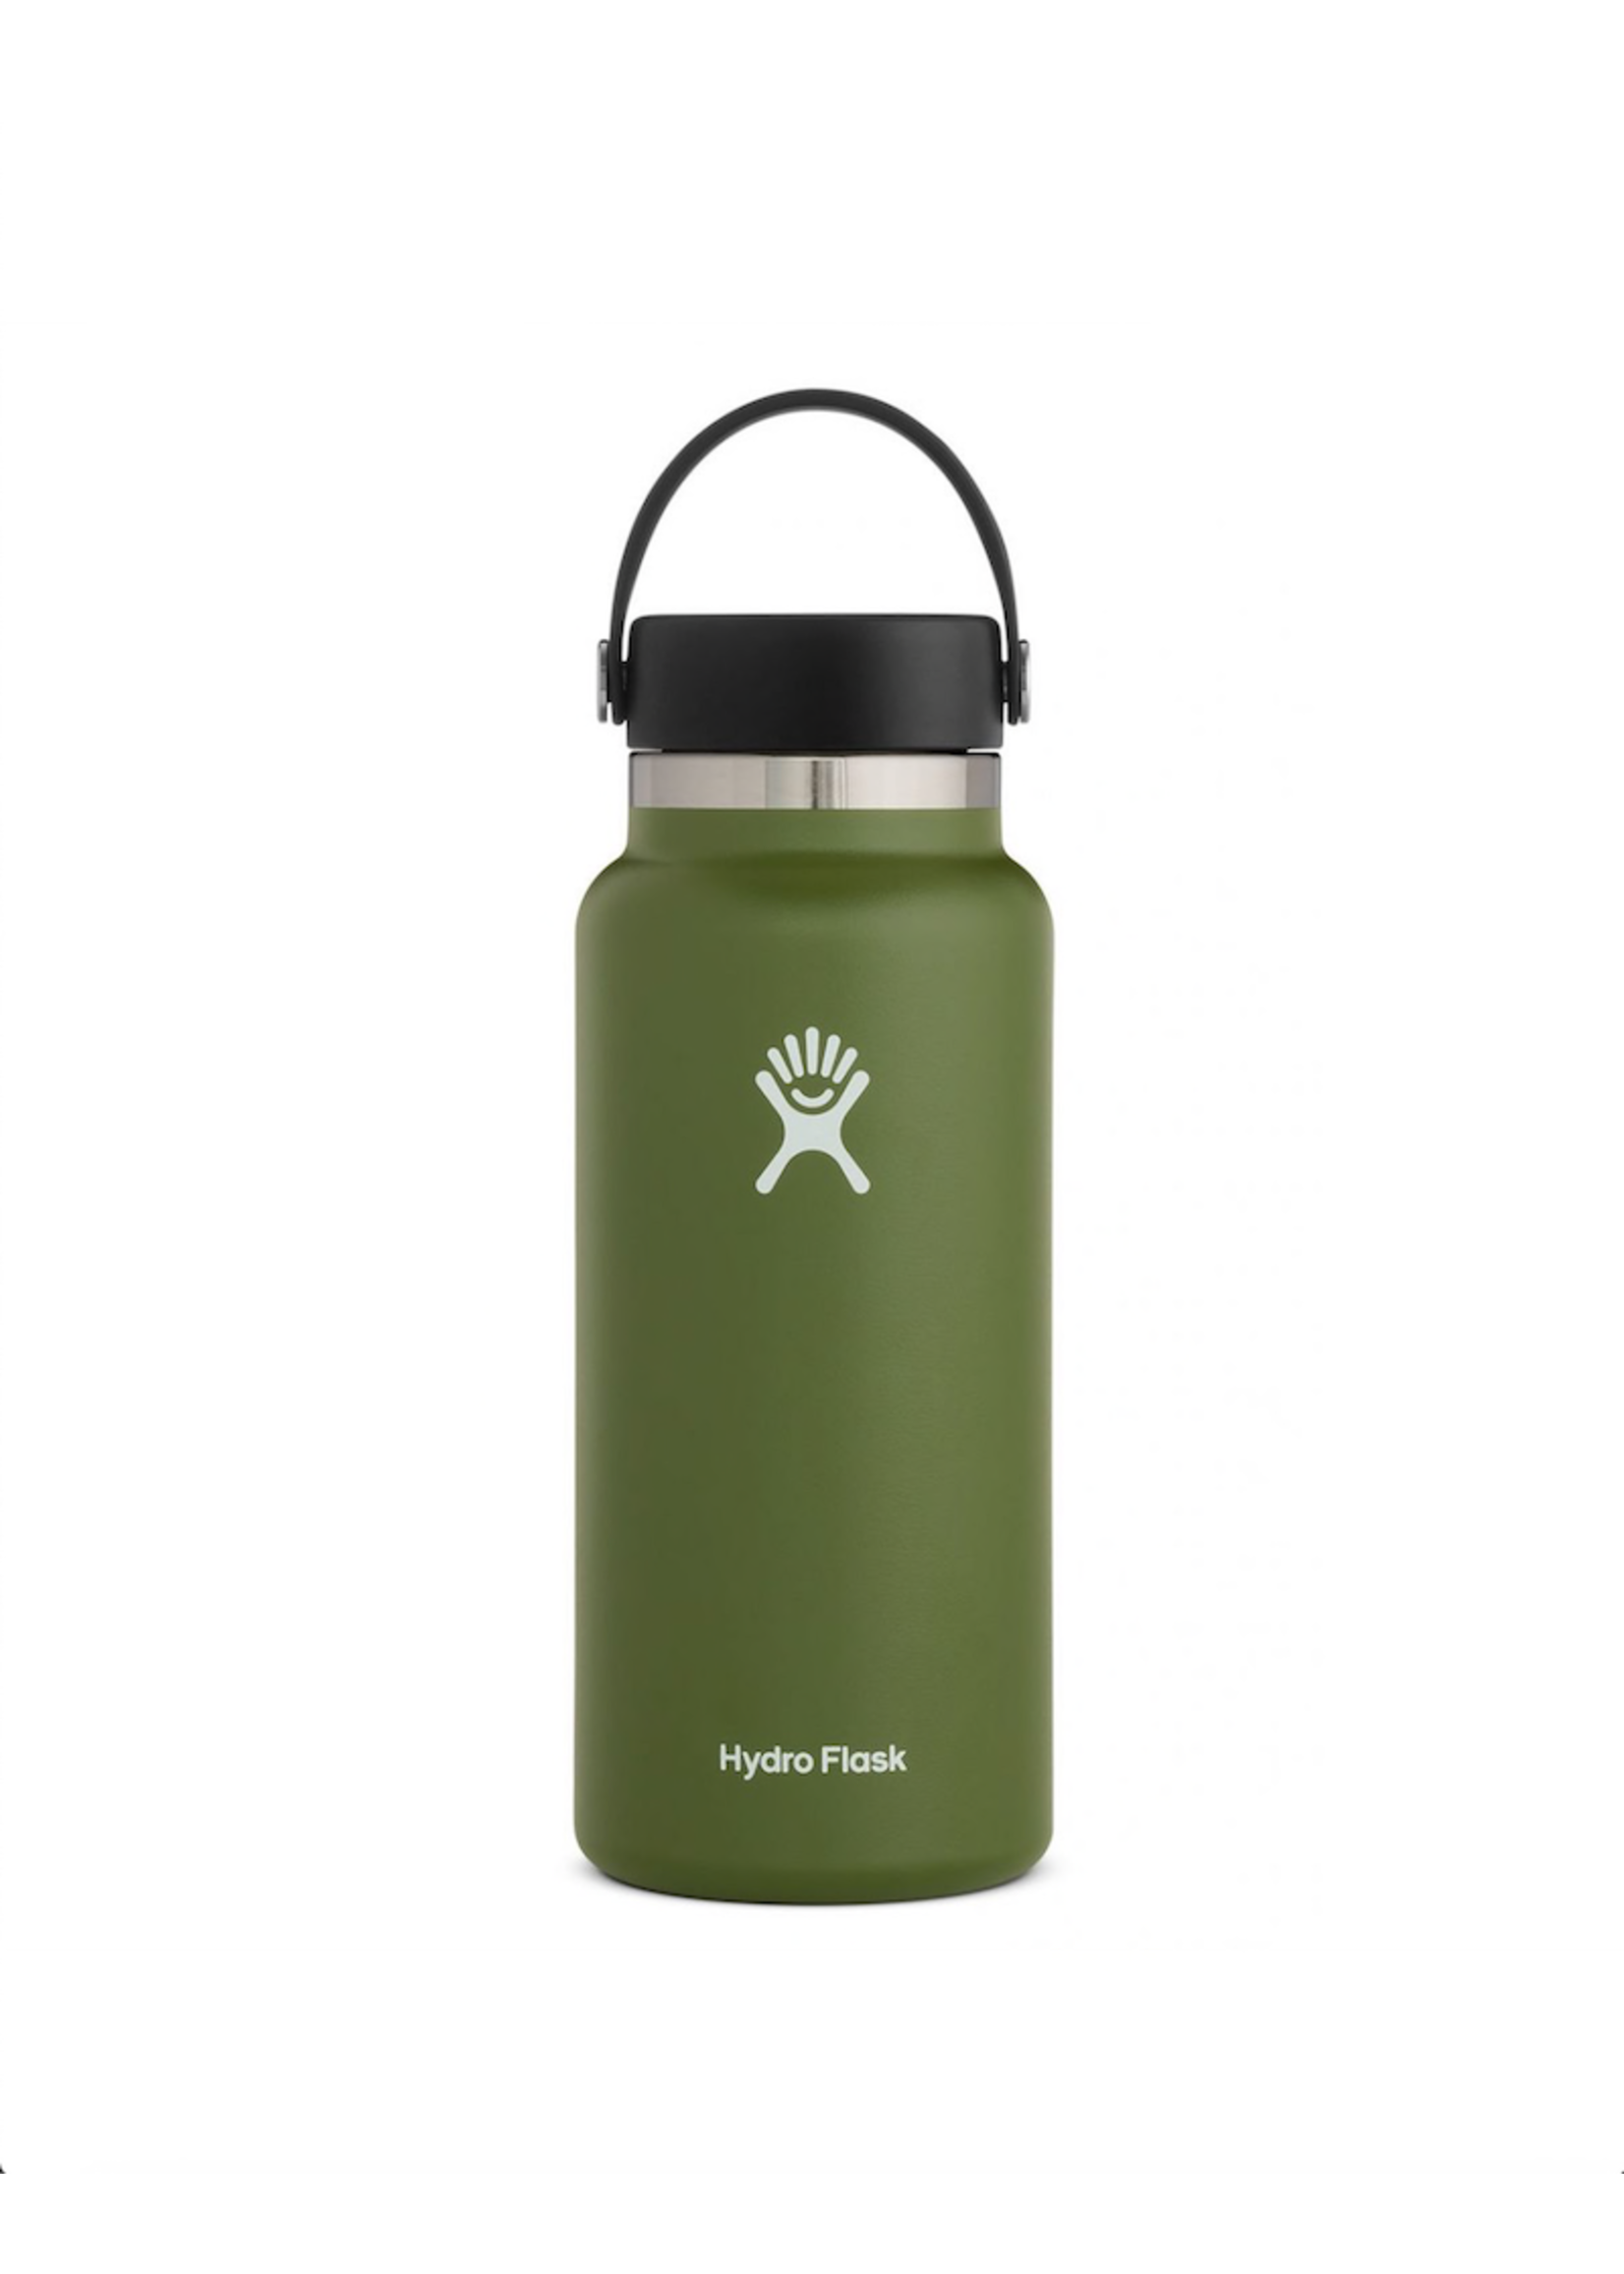 Hydro Flask Hydro Flask, 32 oz Wide Mouth 2.0  Flex Cap Insulated Stainless Steel Bottle in Olive